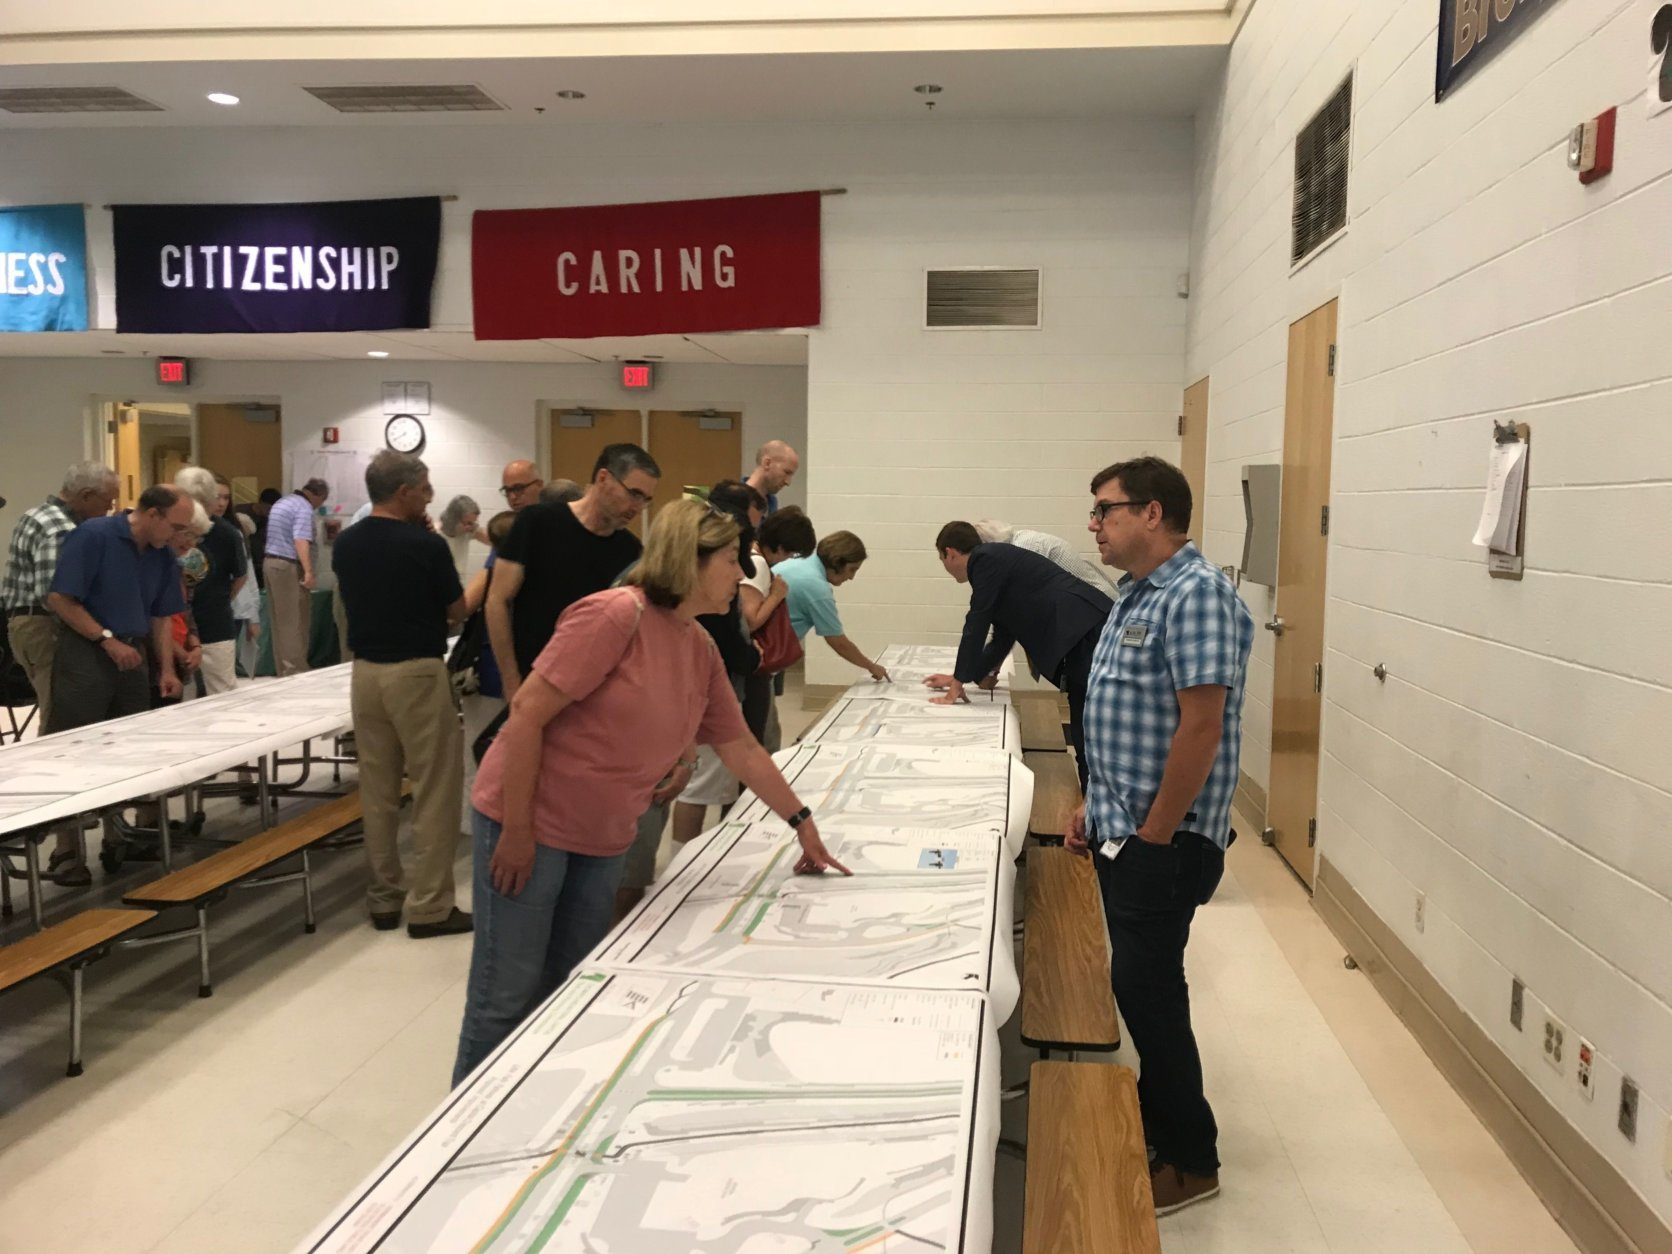 Montgomery County is seeking citizens' input on the proposed changes at a community meeting held by the Montgomery Parks at Somerset Elementary School in Chevy Chase. (WTOP/Dick Uliano)